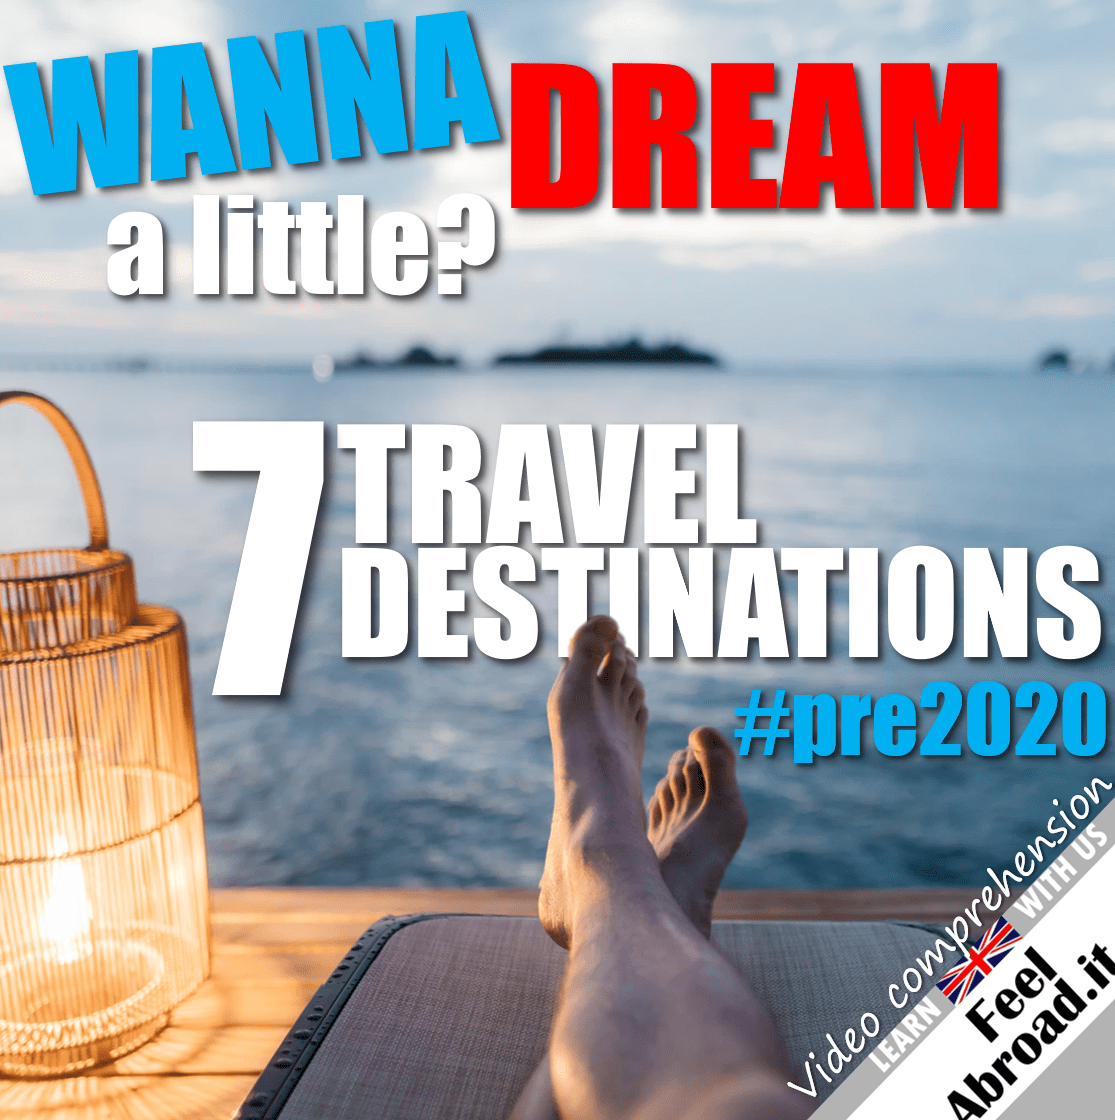 7 travel desinations – #pre2020